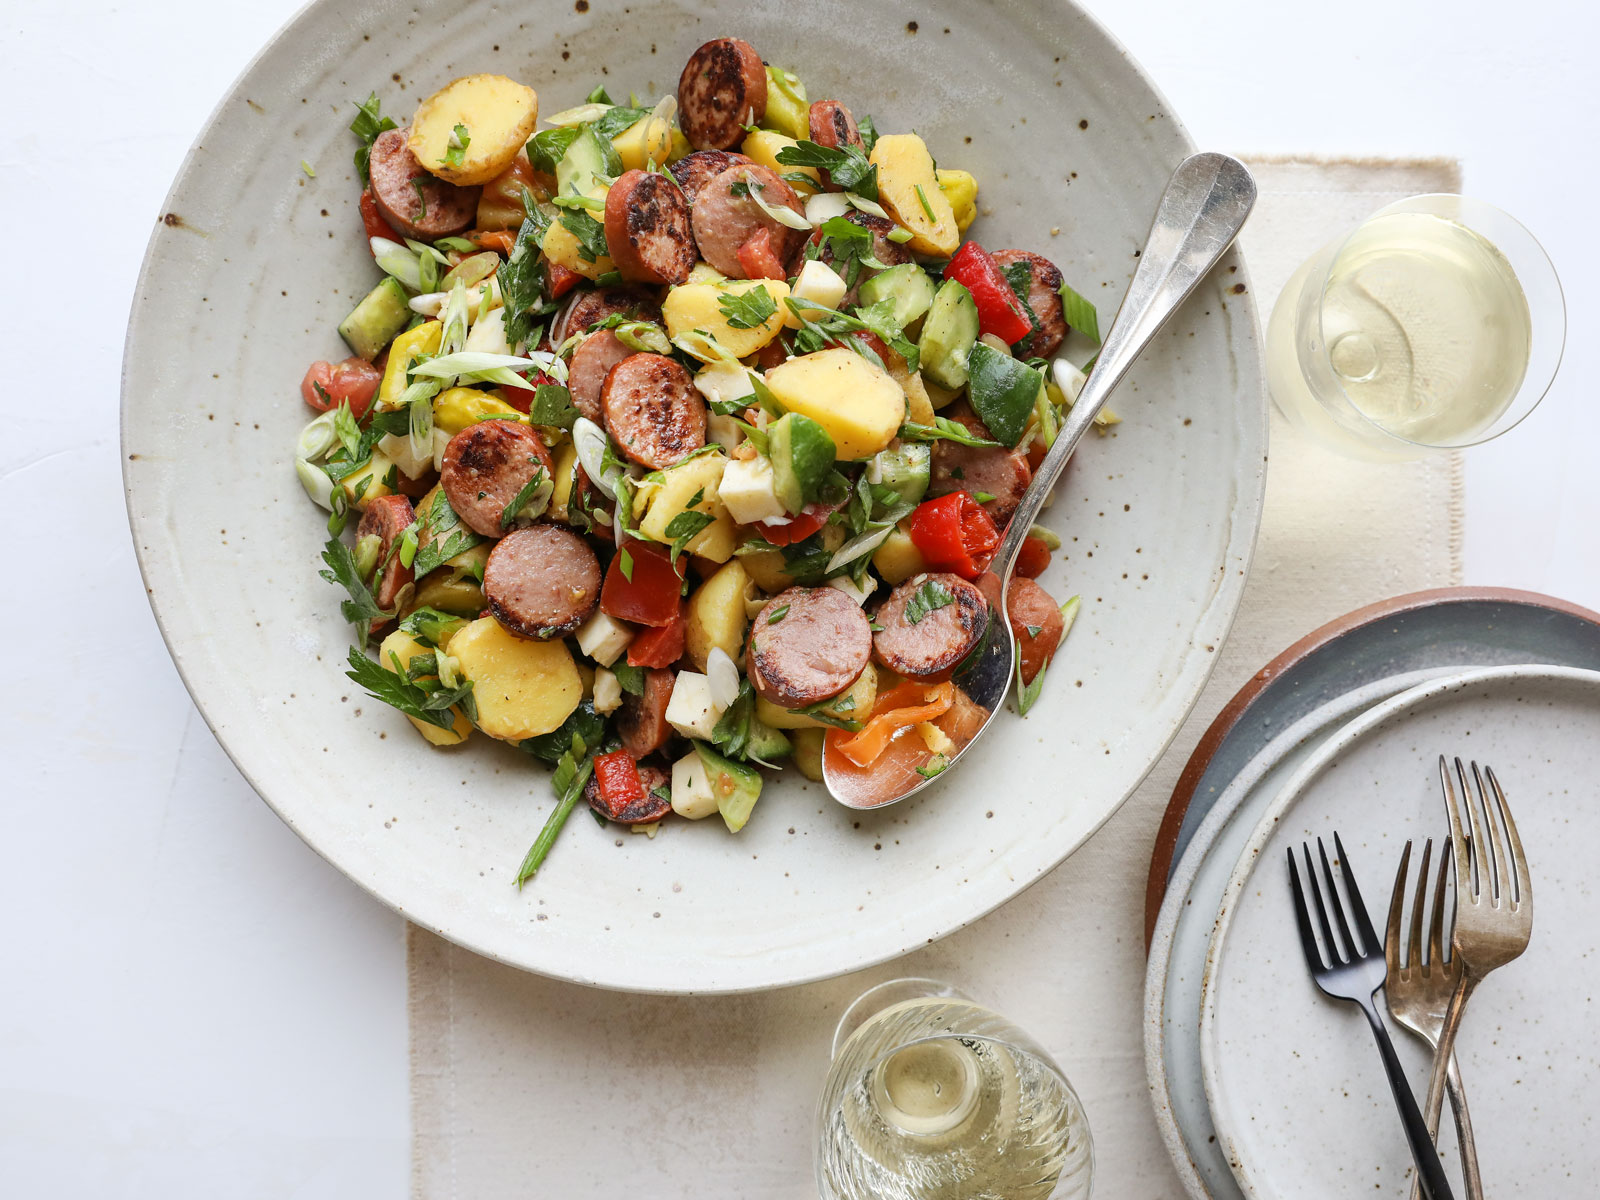 Sausage and Potato Salad